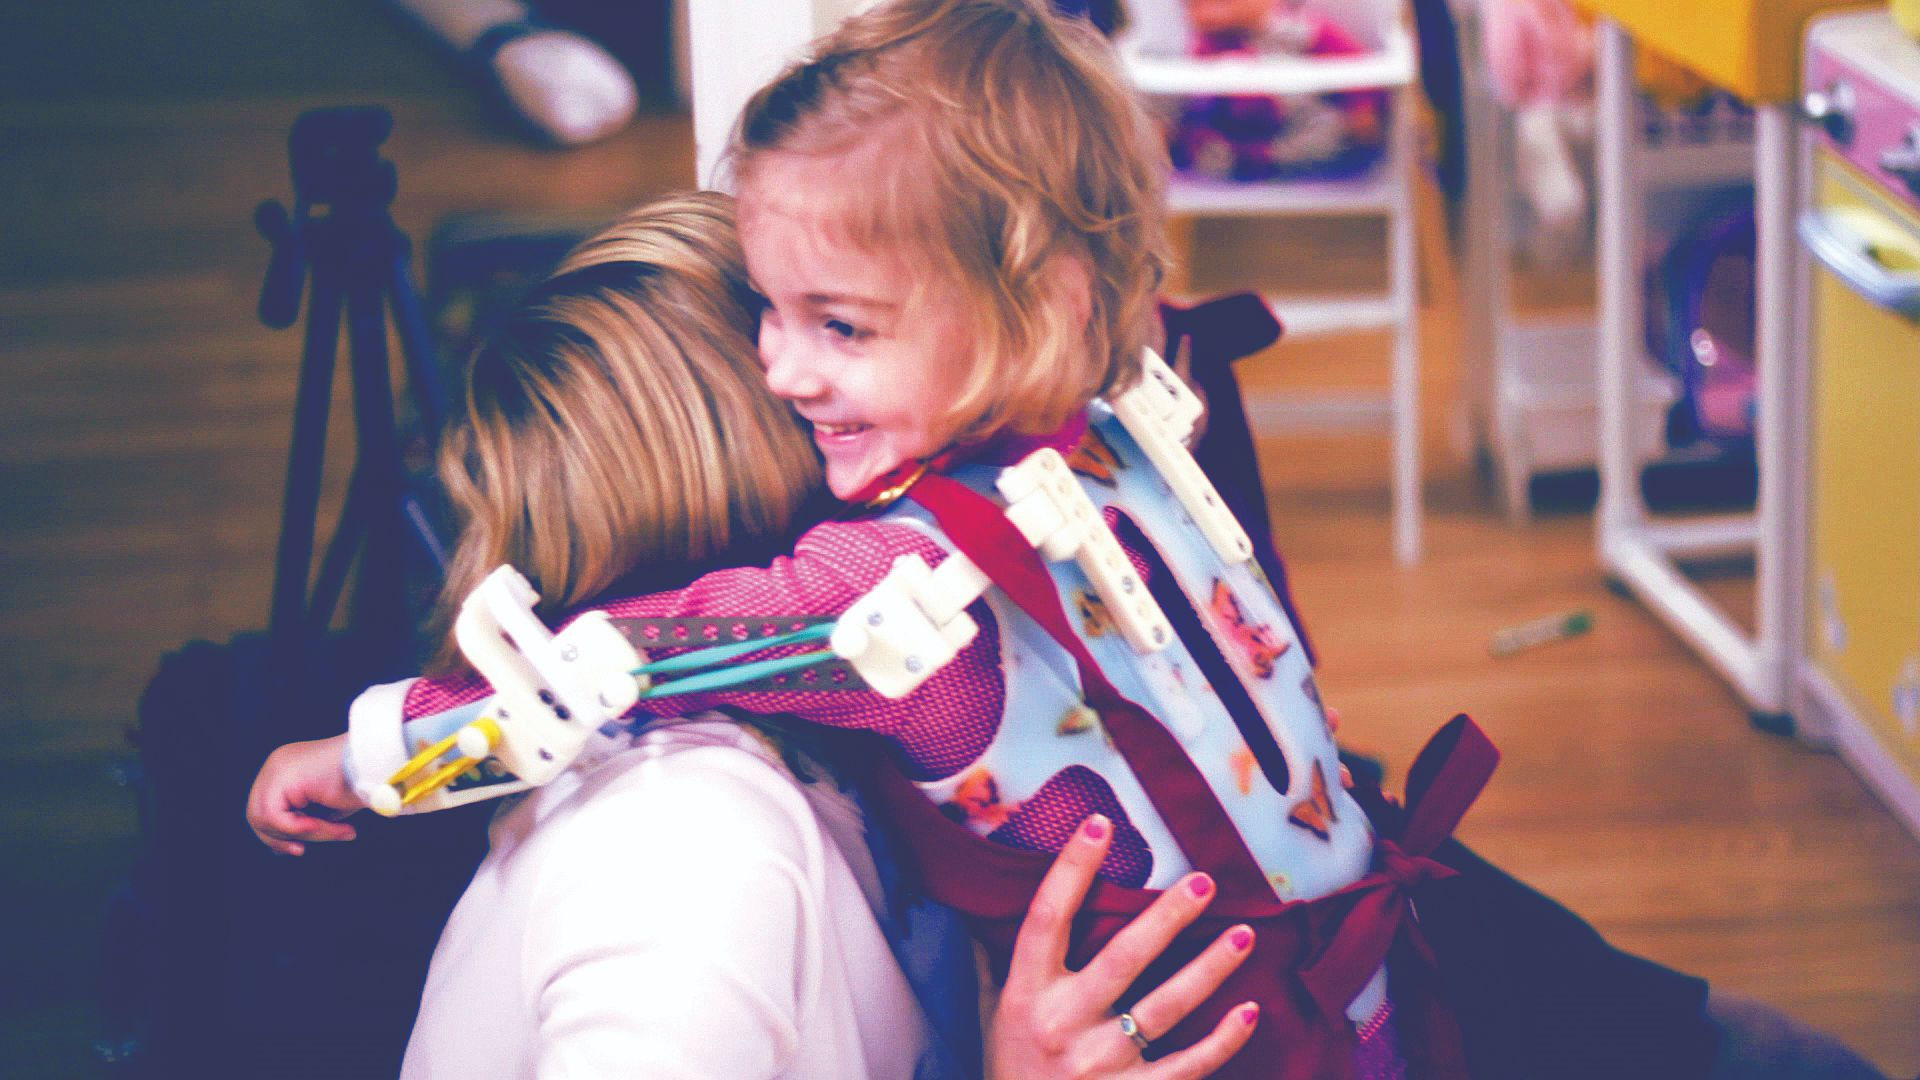 This custom orthopedic device means Emma can feed herself, color and hug.